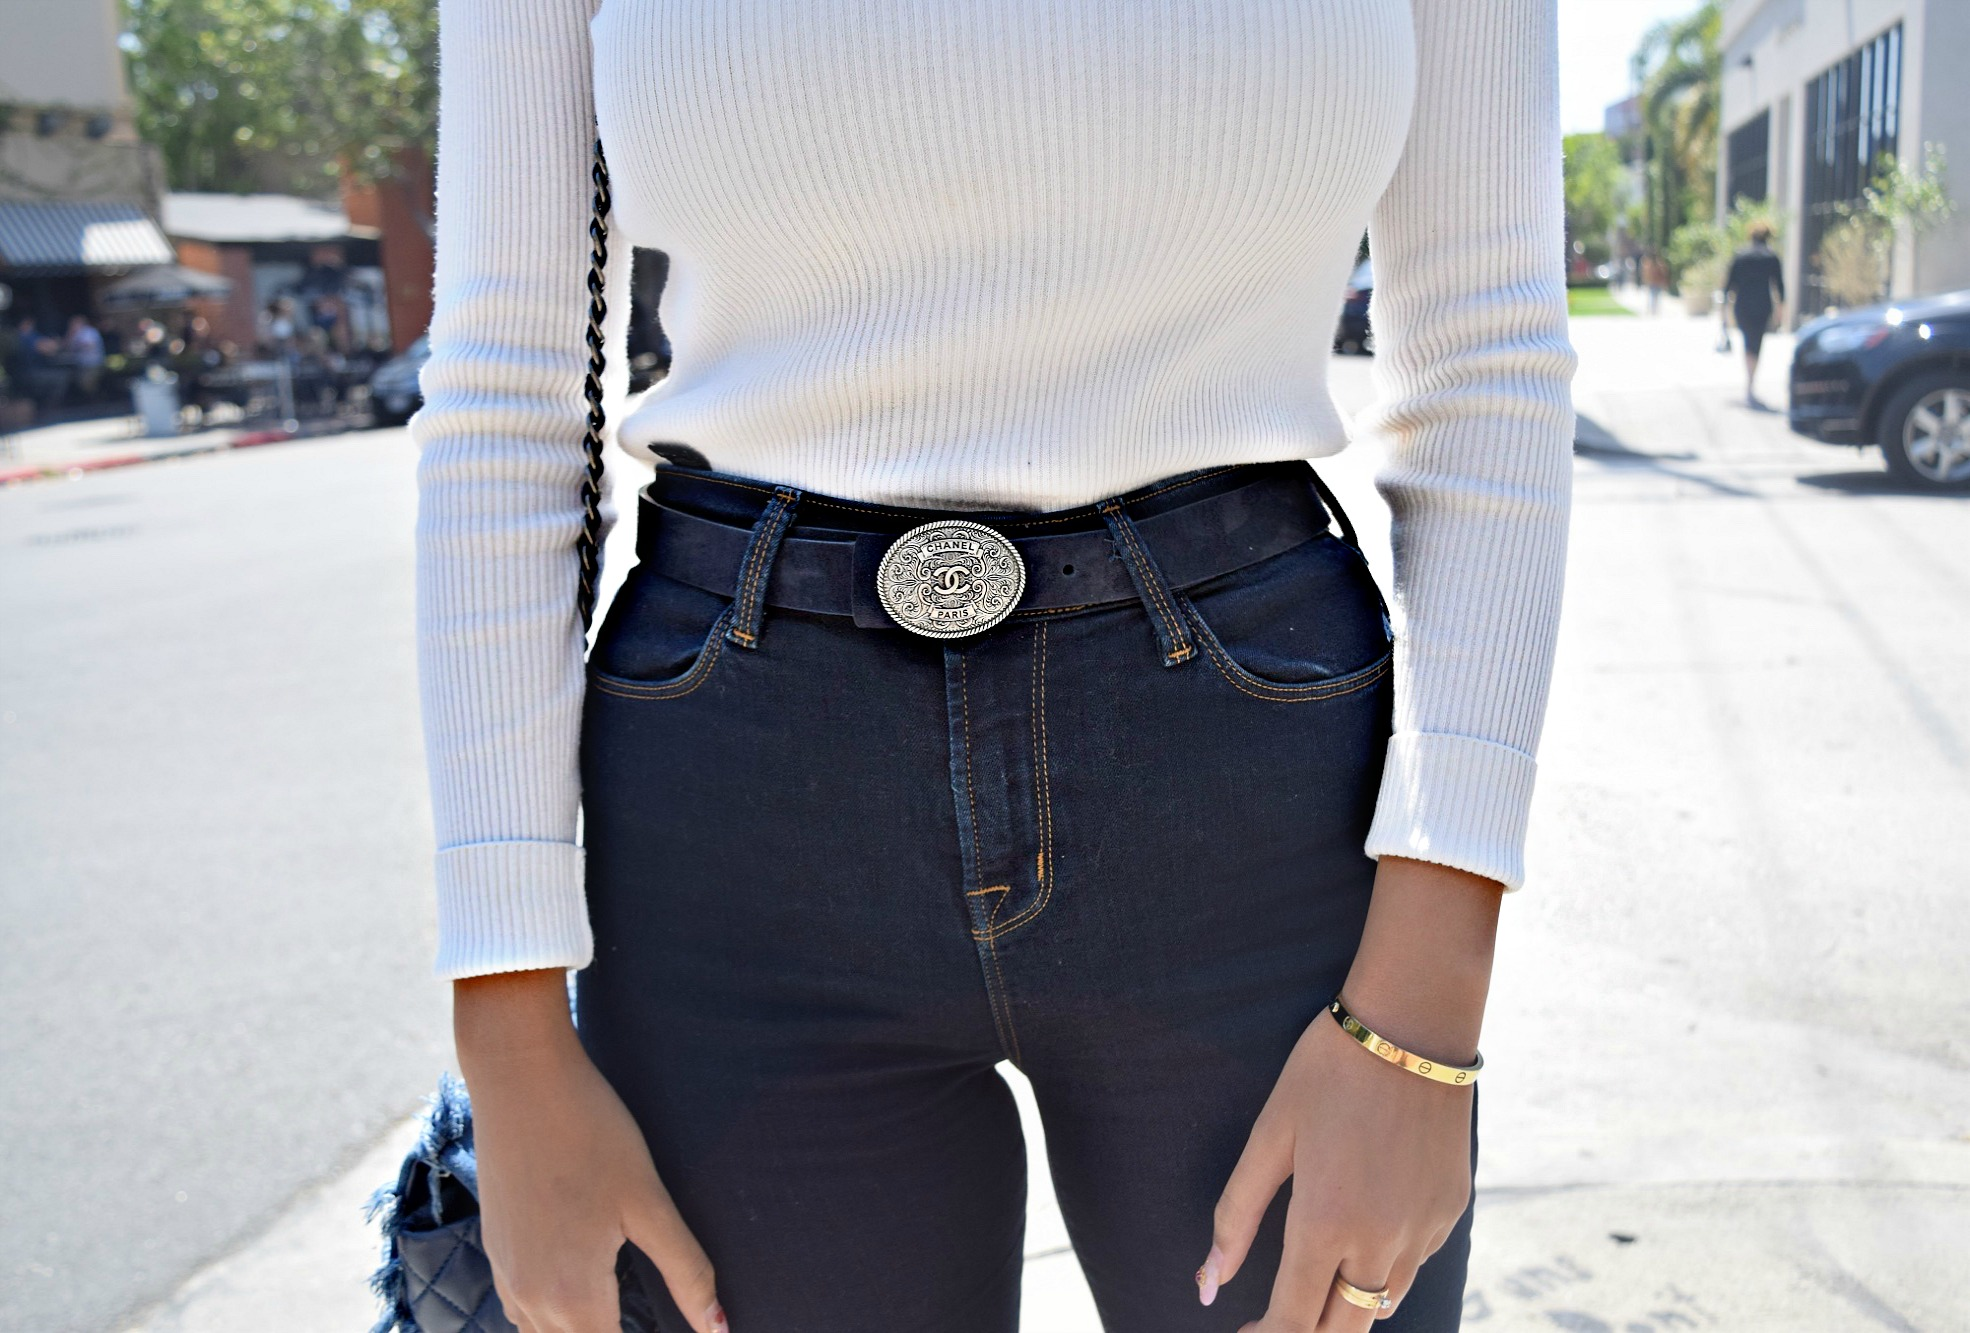 Chanel Western Belt Details Shot, Los Angeles Spring/Summer Street Style: To Style, With Love